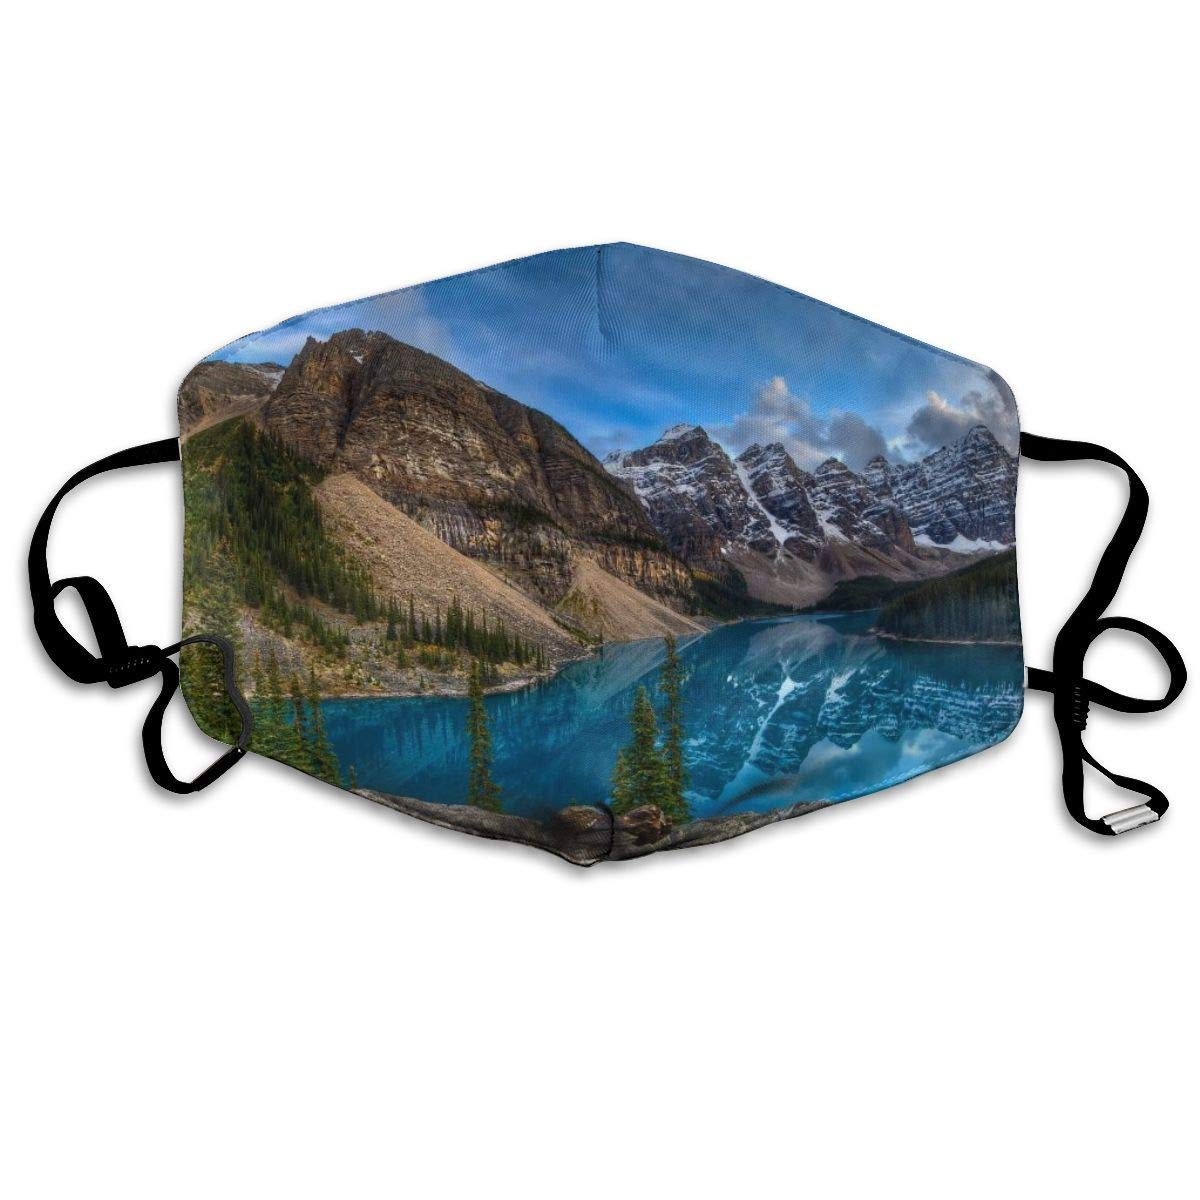 Bdwuhs Mascarillas Bucales,Boca Máscara Dust Mask for Women and Men Rocky Mountains Printed Foldable Mask Face Mask Anti-Dust Mouth Mask